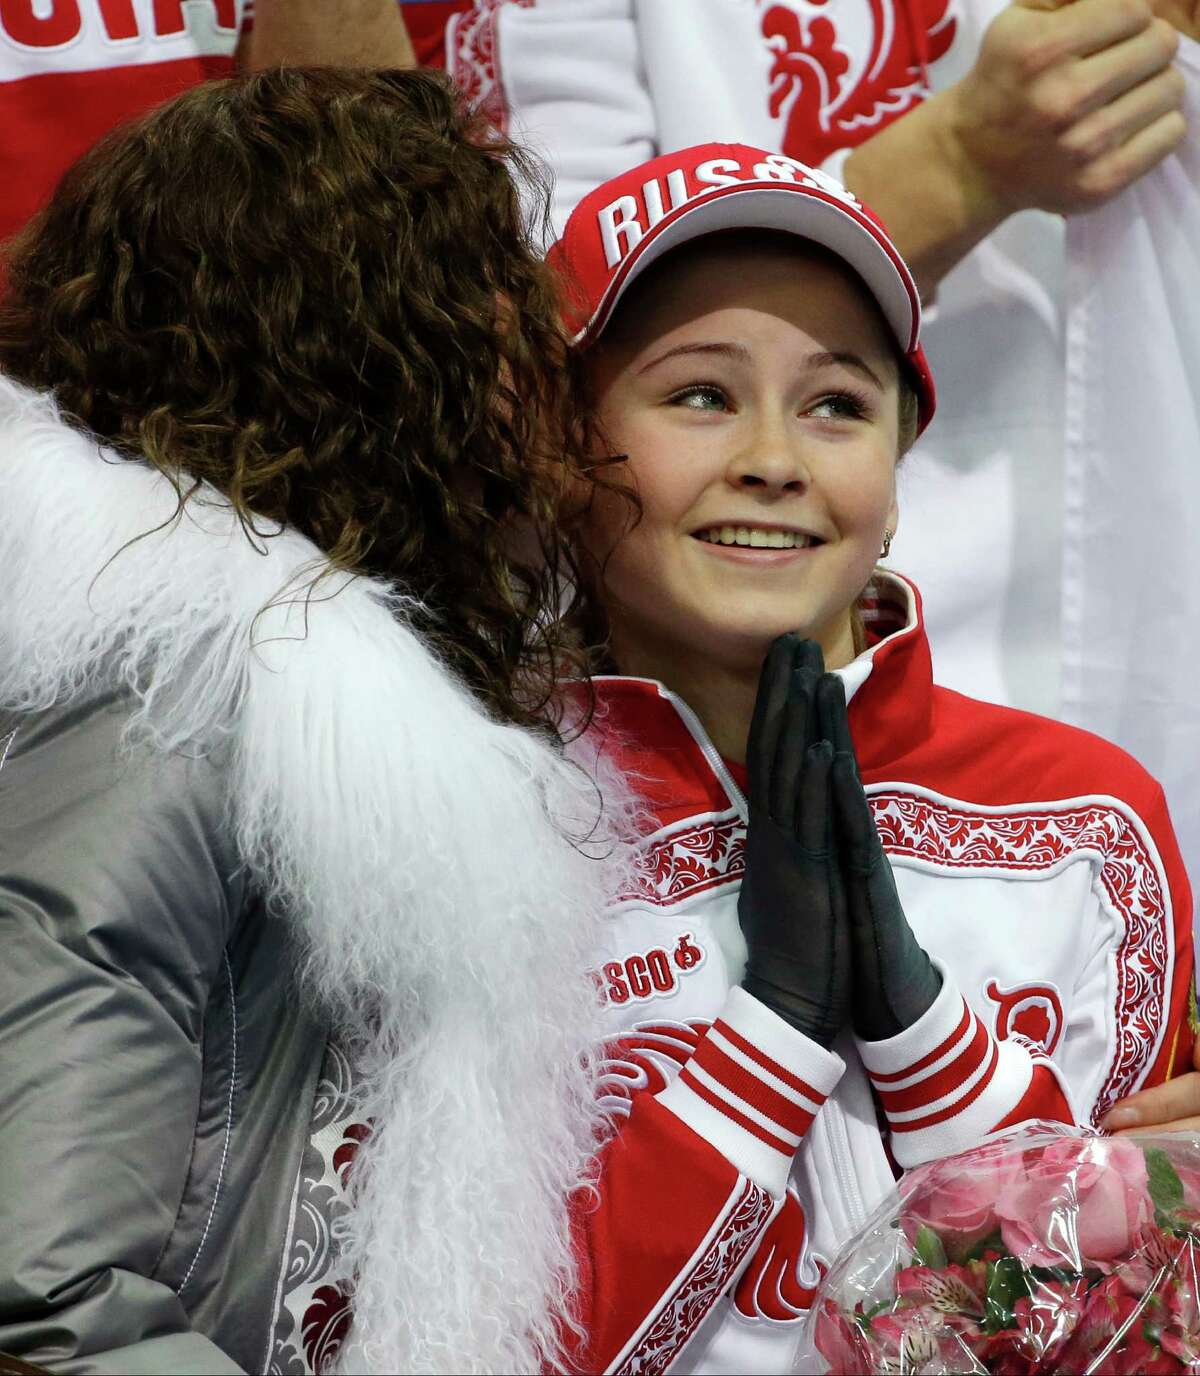 Julia Lipnitskaia of Russia sits in the results area after competing in the women's team free skate figure skating competition at the Iceberg Skating Palace during the 2014 Winter Olympics, Sunday, Feb. 9, 2014, in Sochi, Russia.